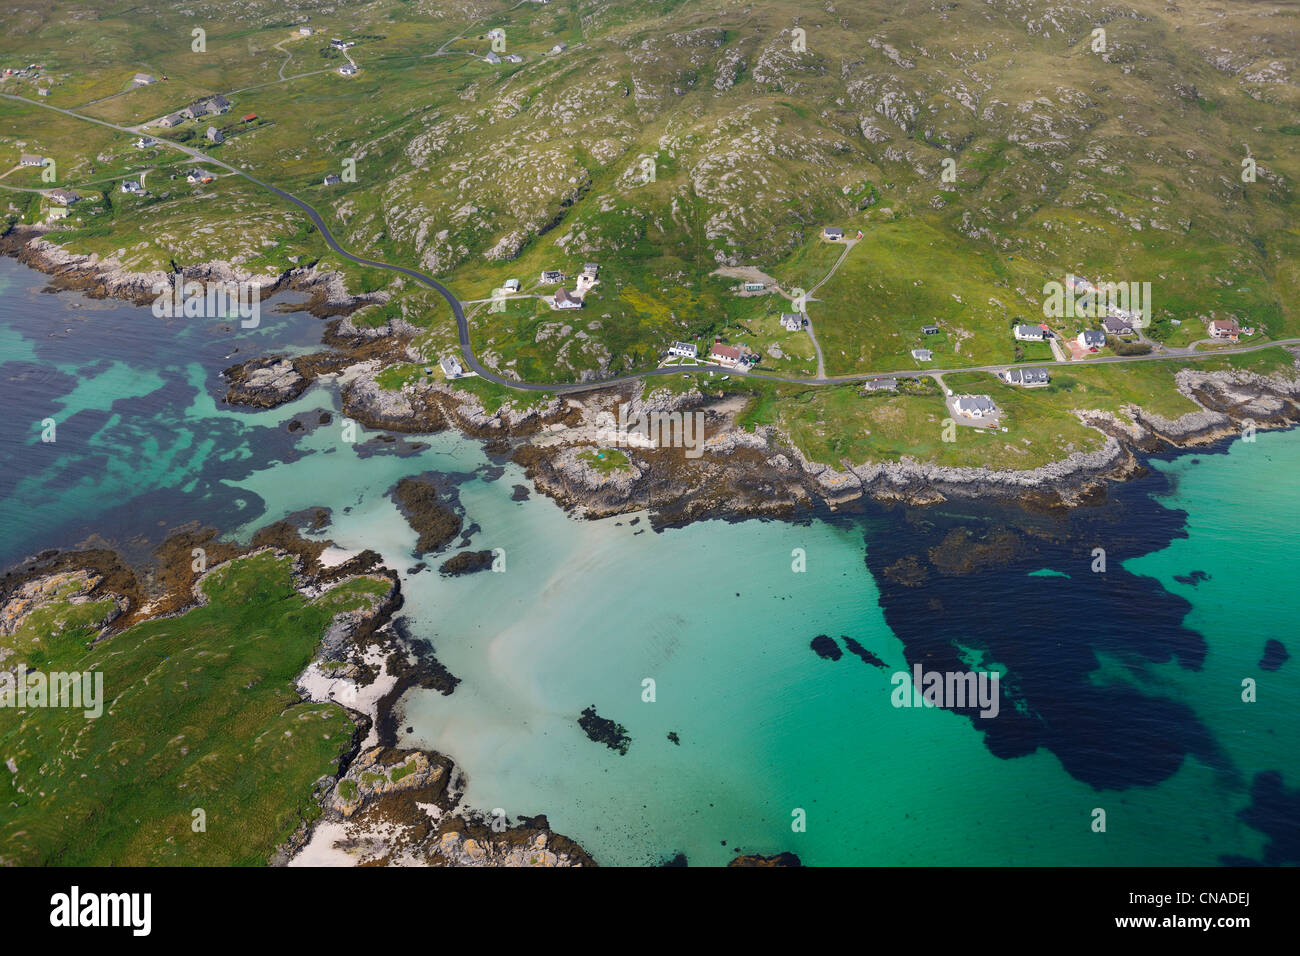 United Kingdom, Scotland, Outer Hebrides, Isle of Barra, the east coast at Ersary (aerial view) - Stock Image